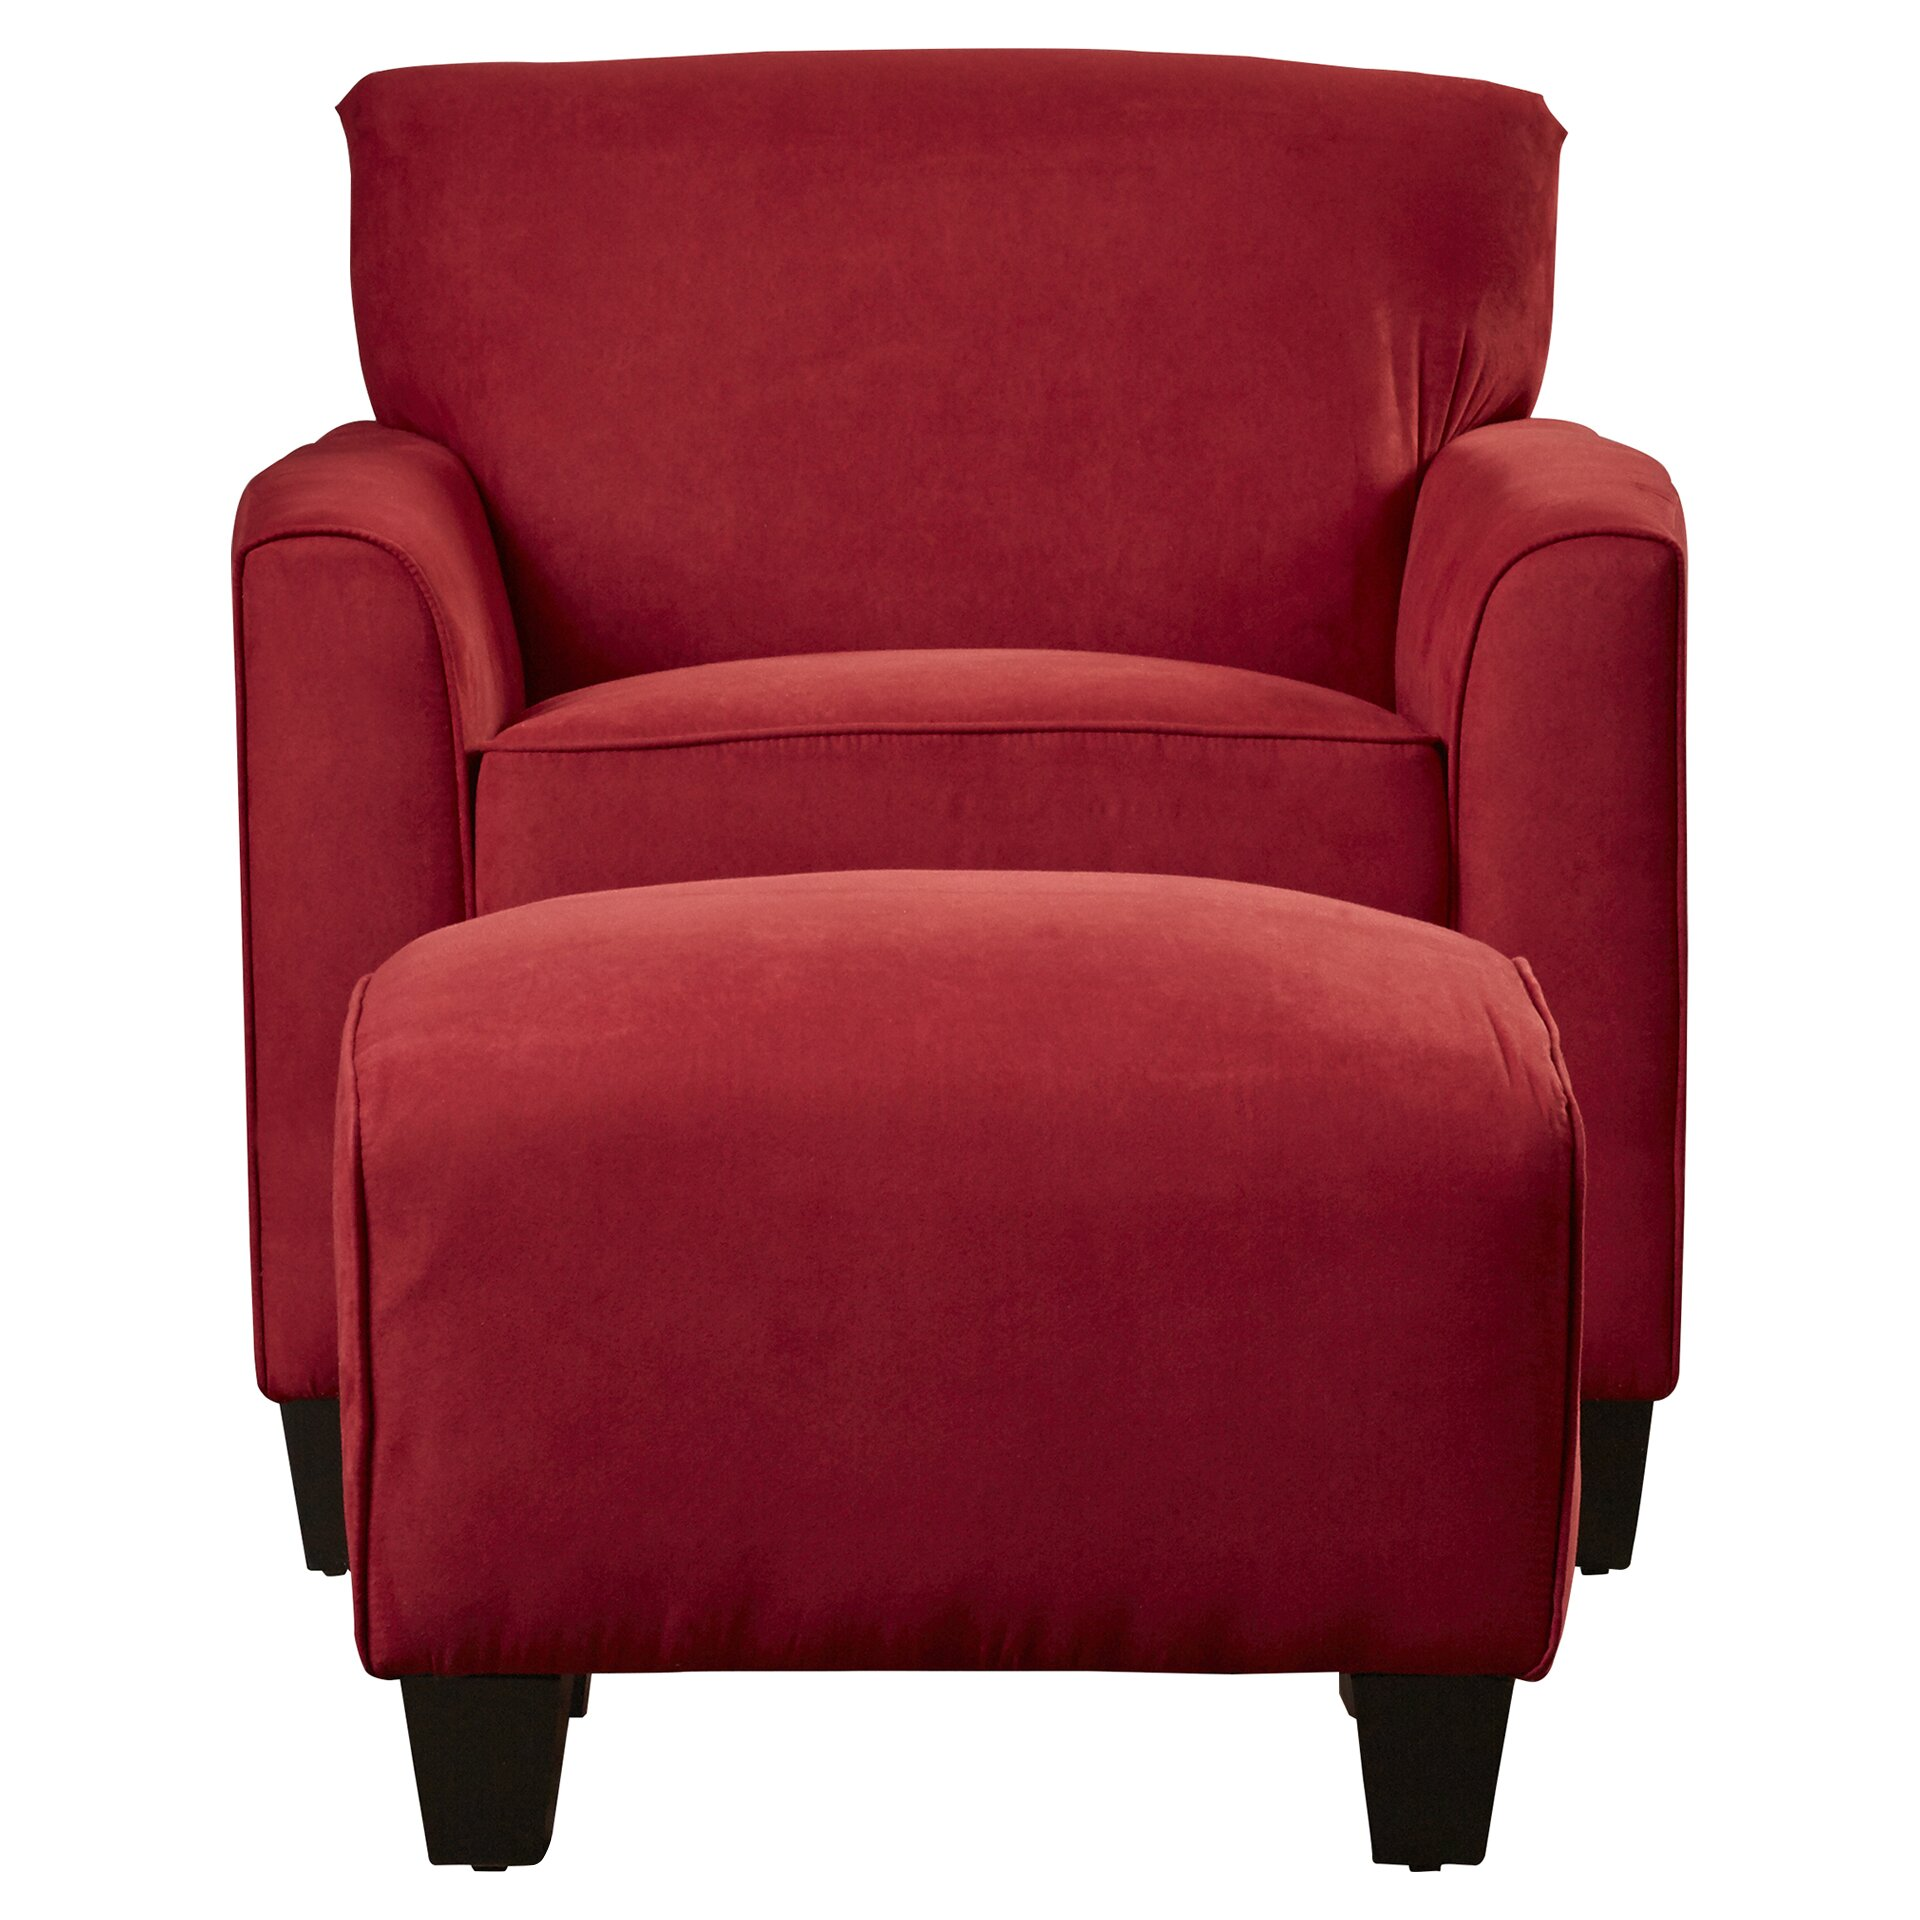 Red Barrel Studio Great Northern Arm Chair And Ottoman